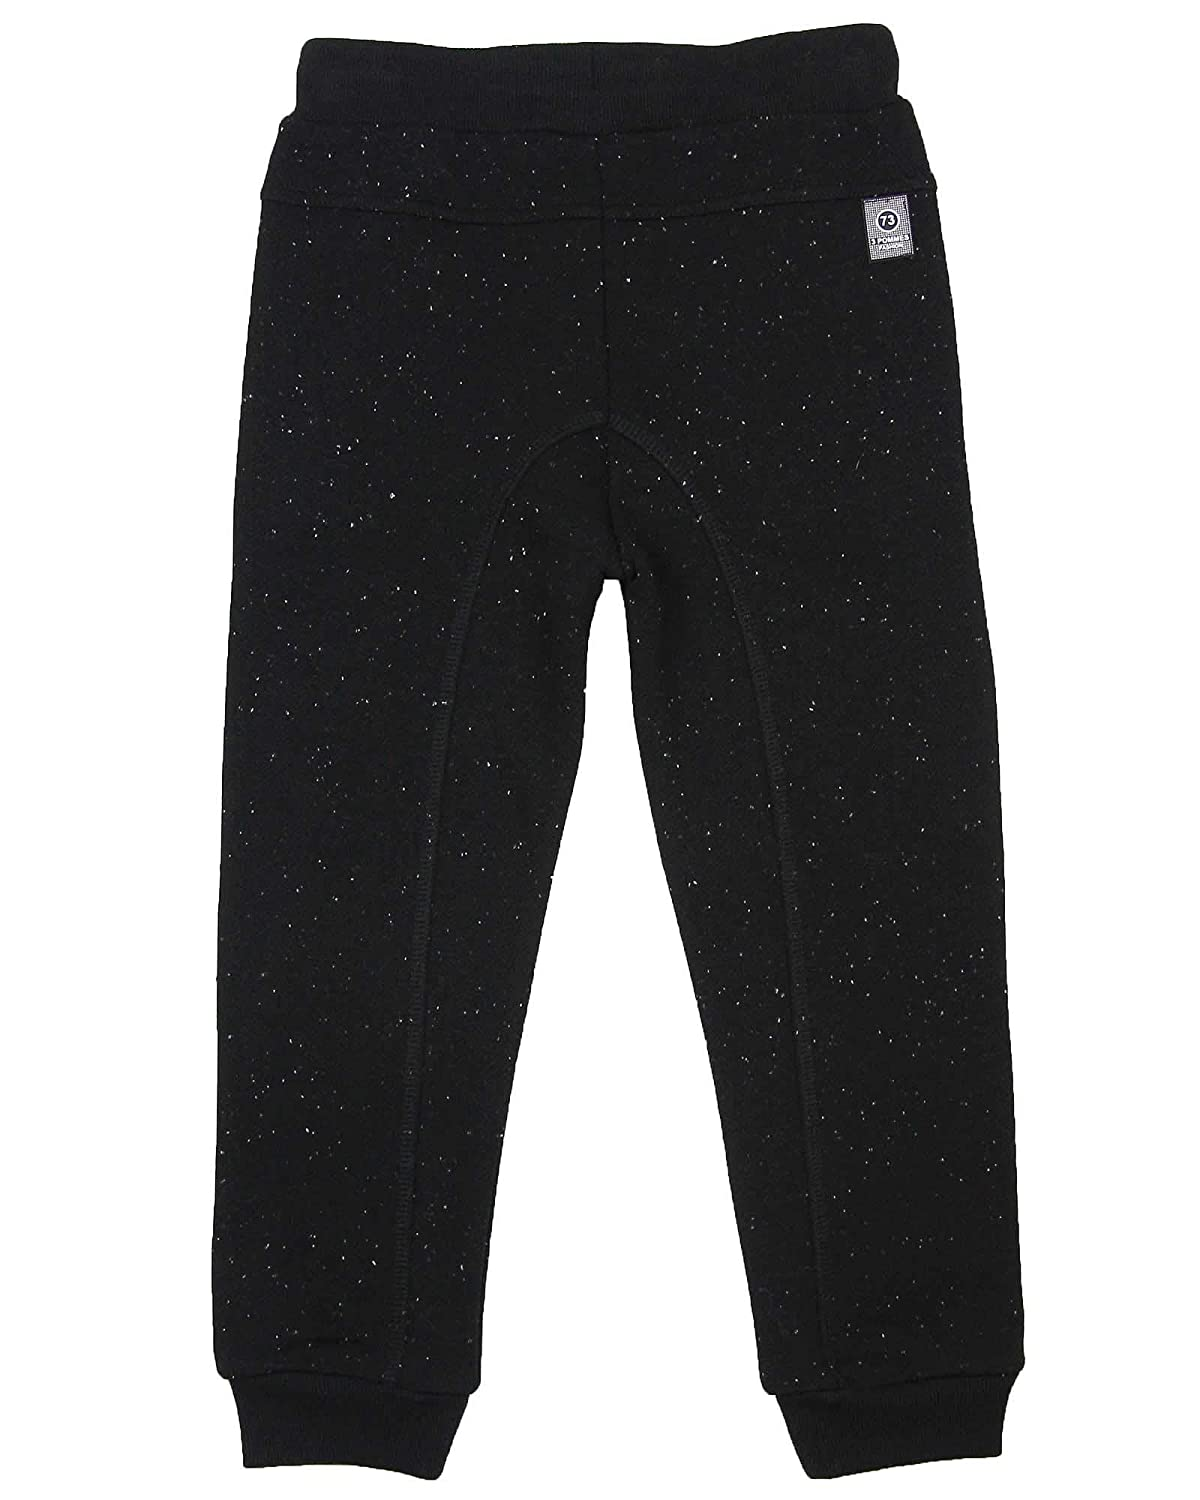 Sizes 4-12 3 Pommes Boys Speckled Sweatpants